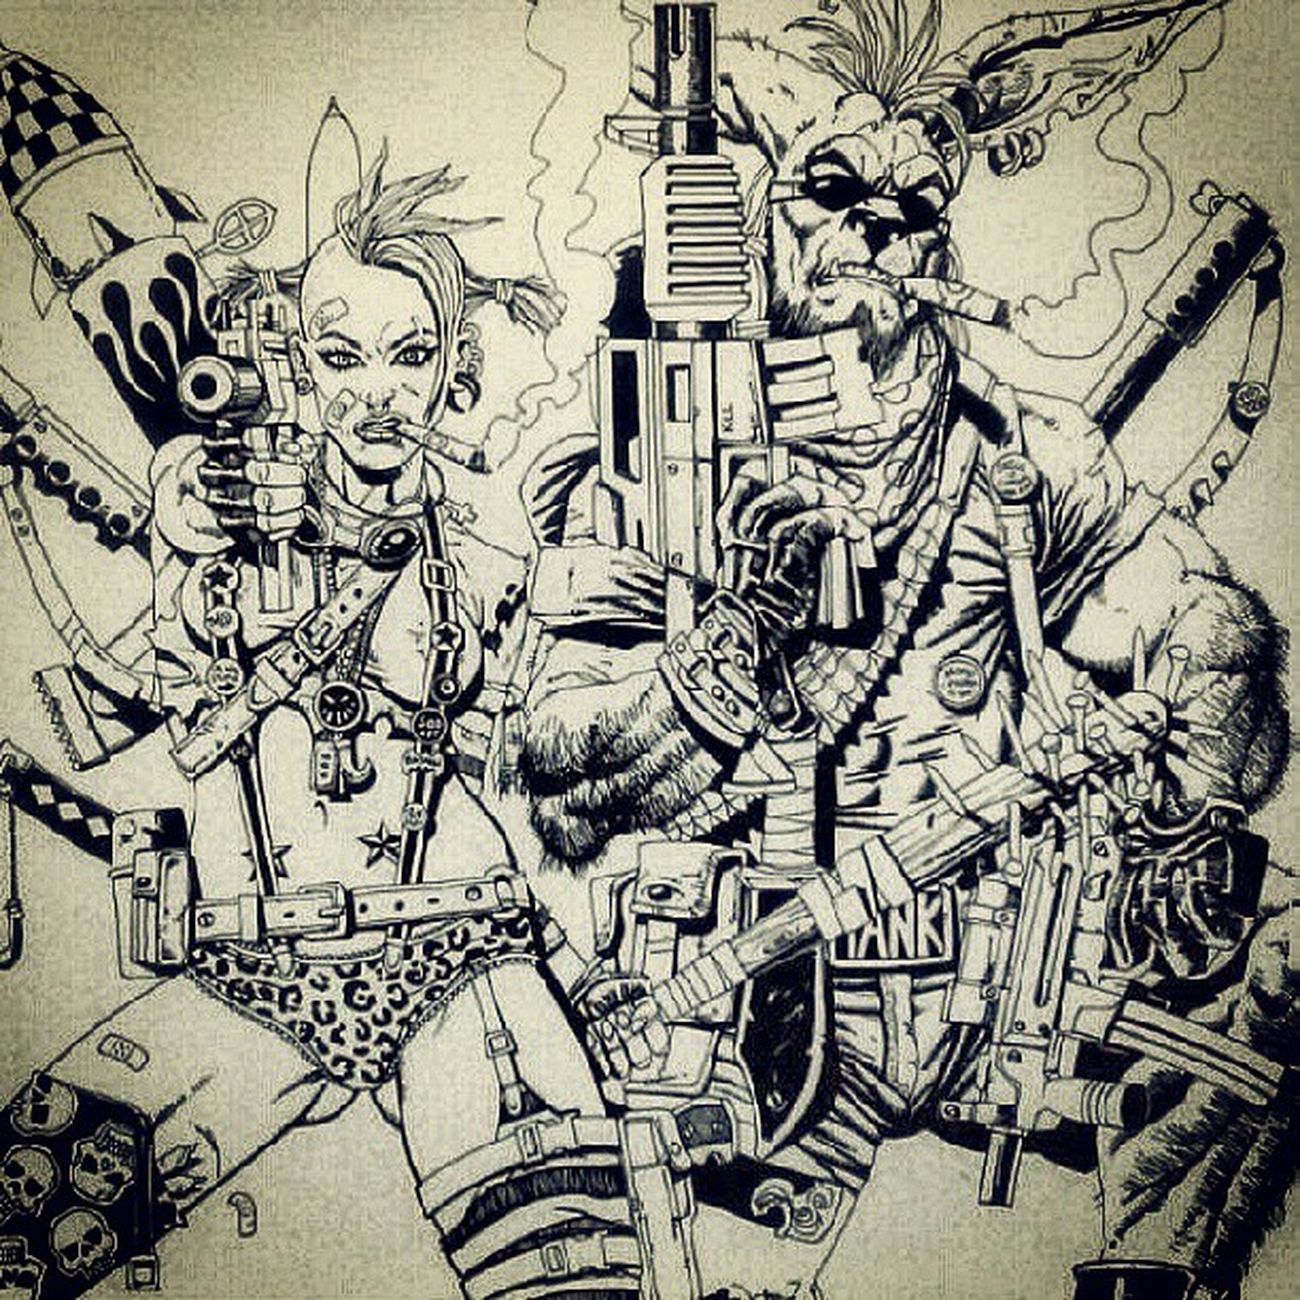 Tankgirl Booga Comics Art artwork artexercise sketch ink marker drawing igart kangaroo guns explosions lovers